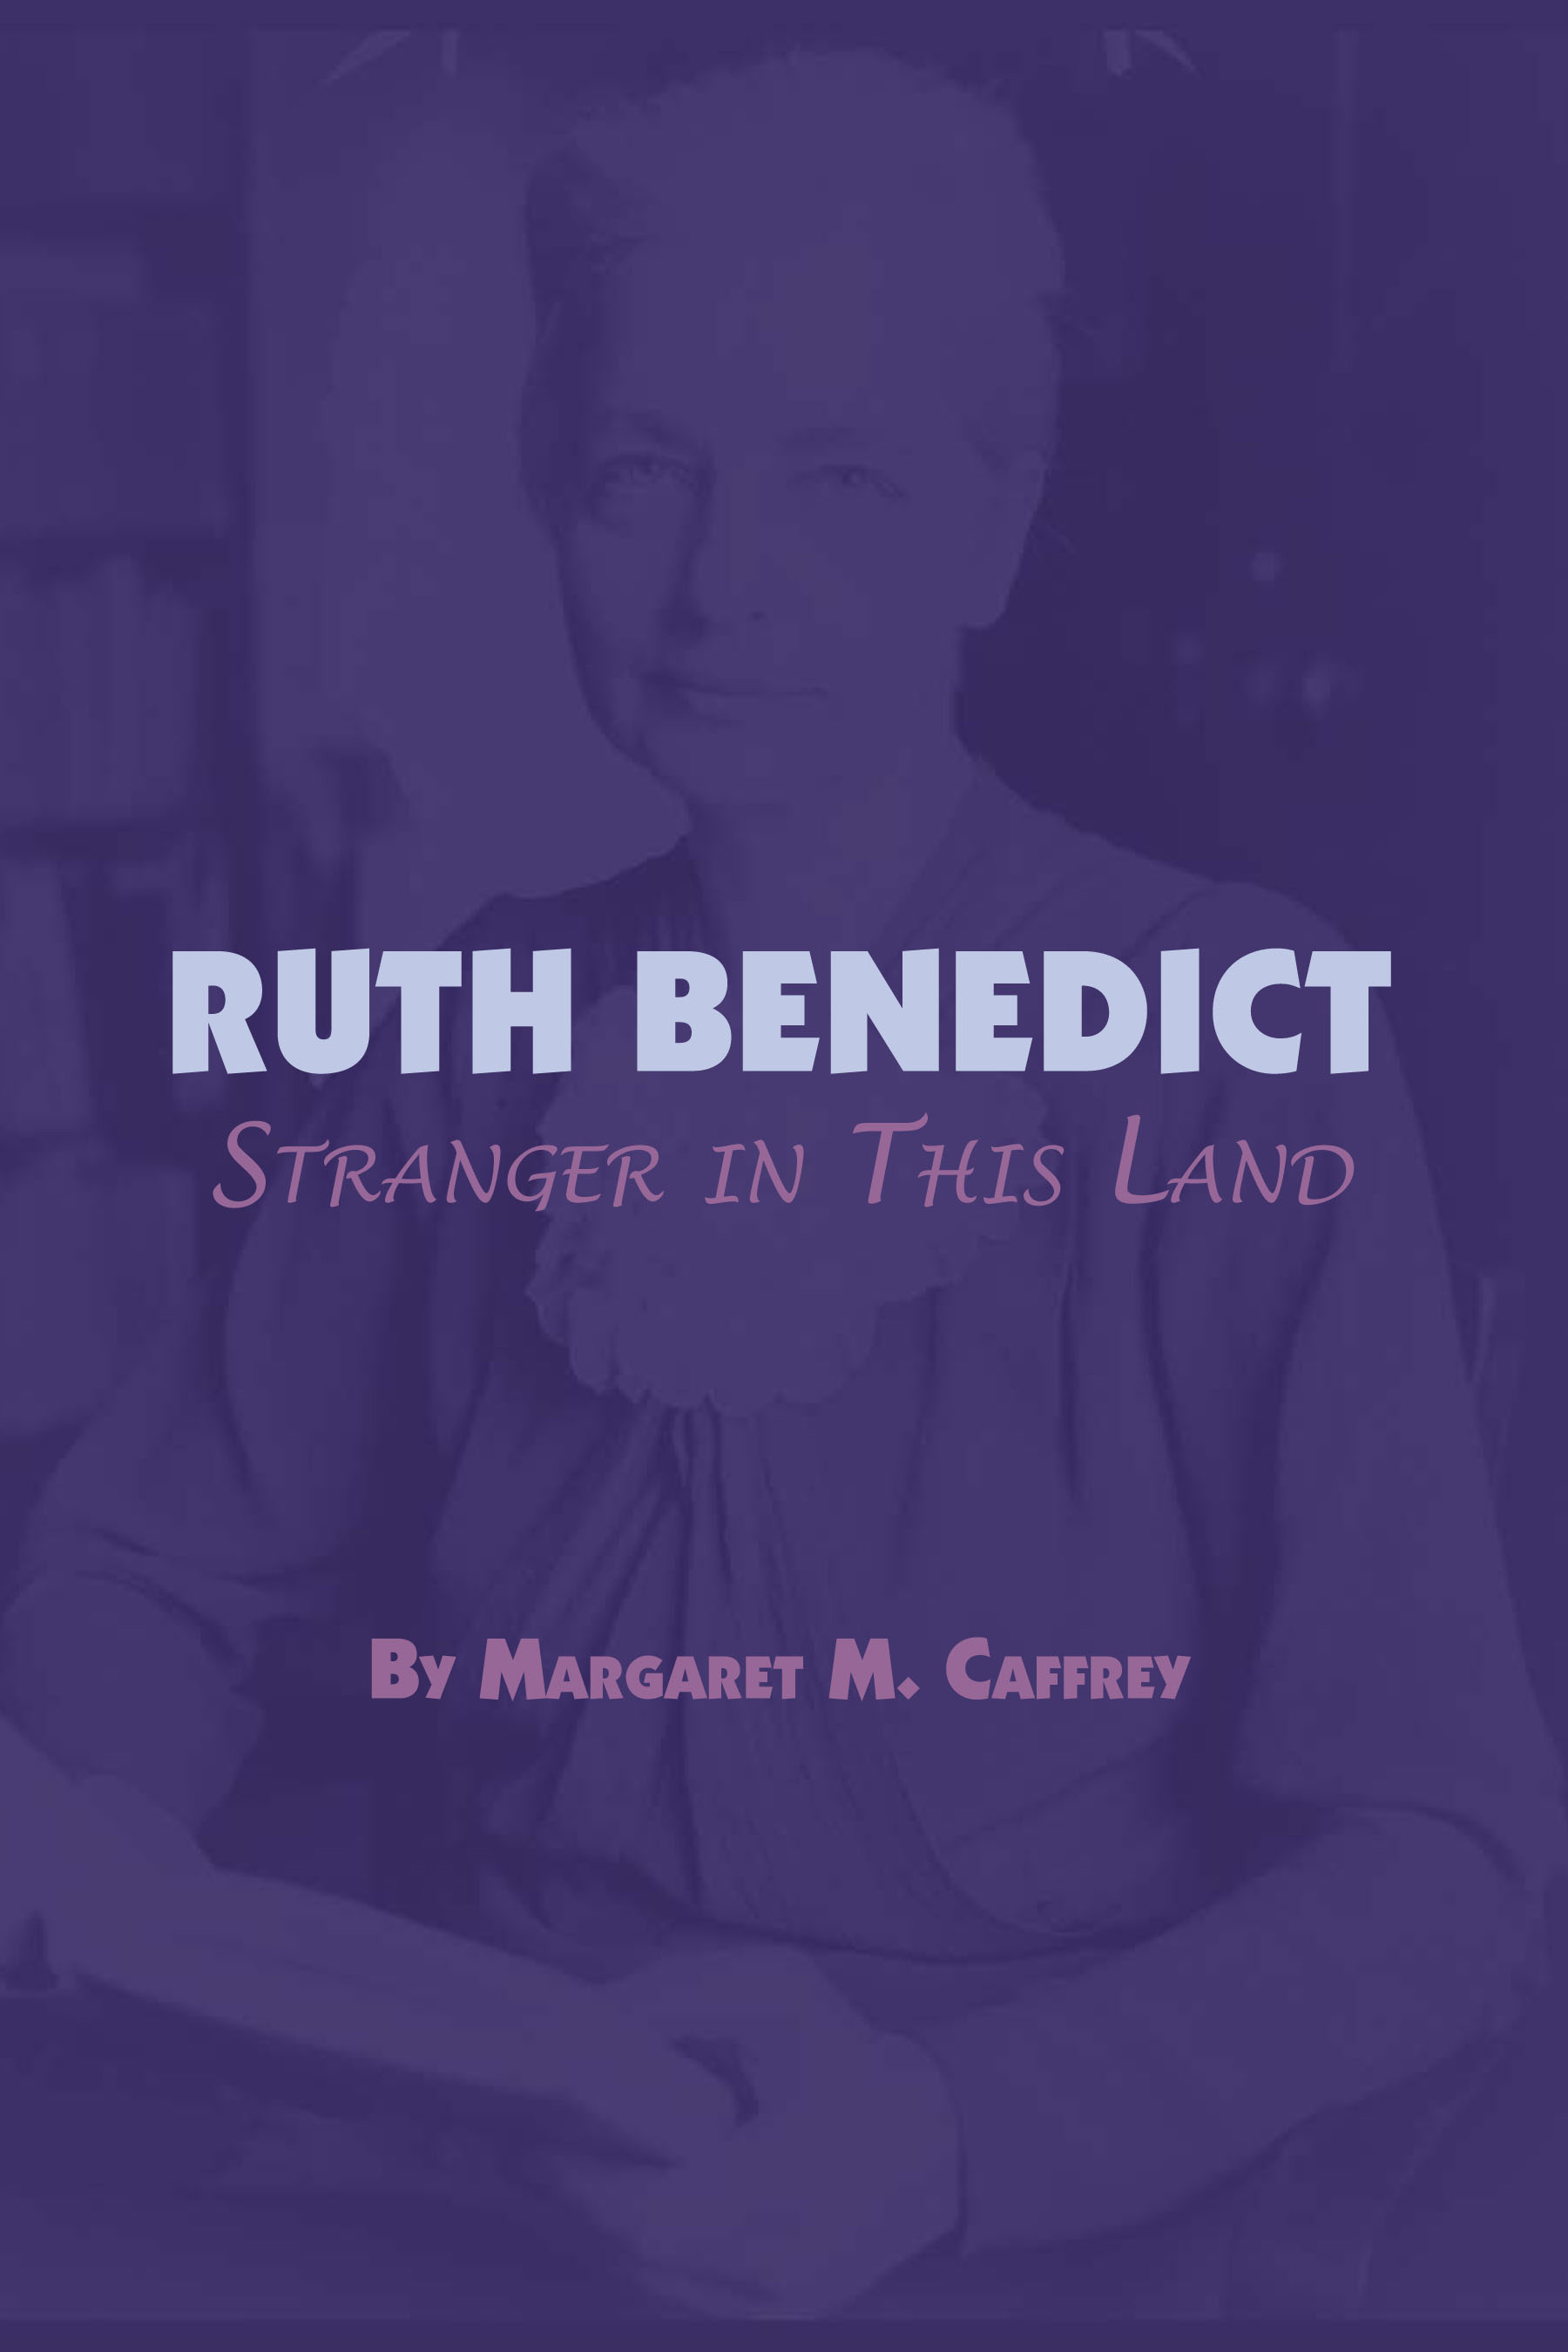 Cover of Ruth Benedict